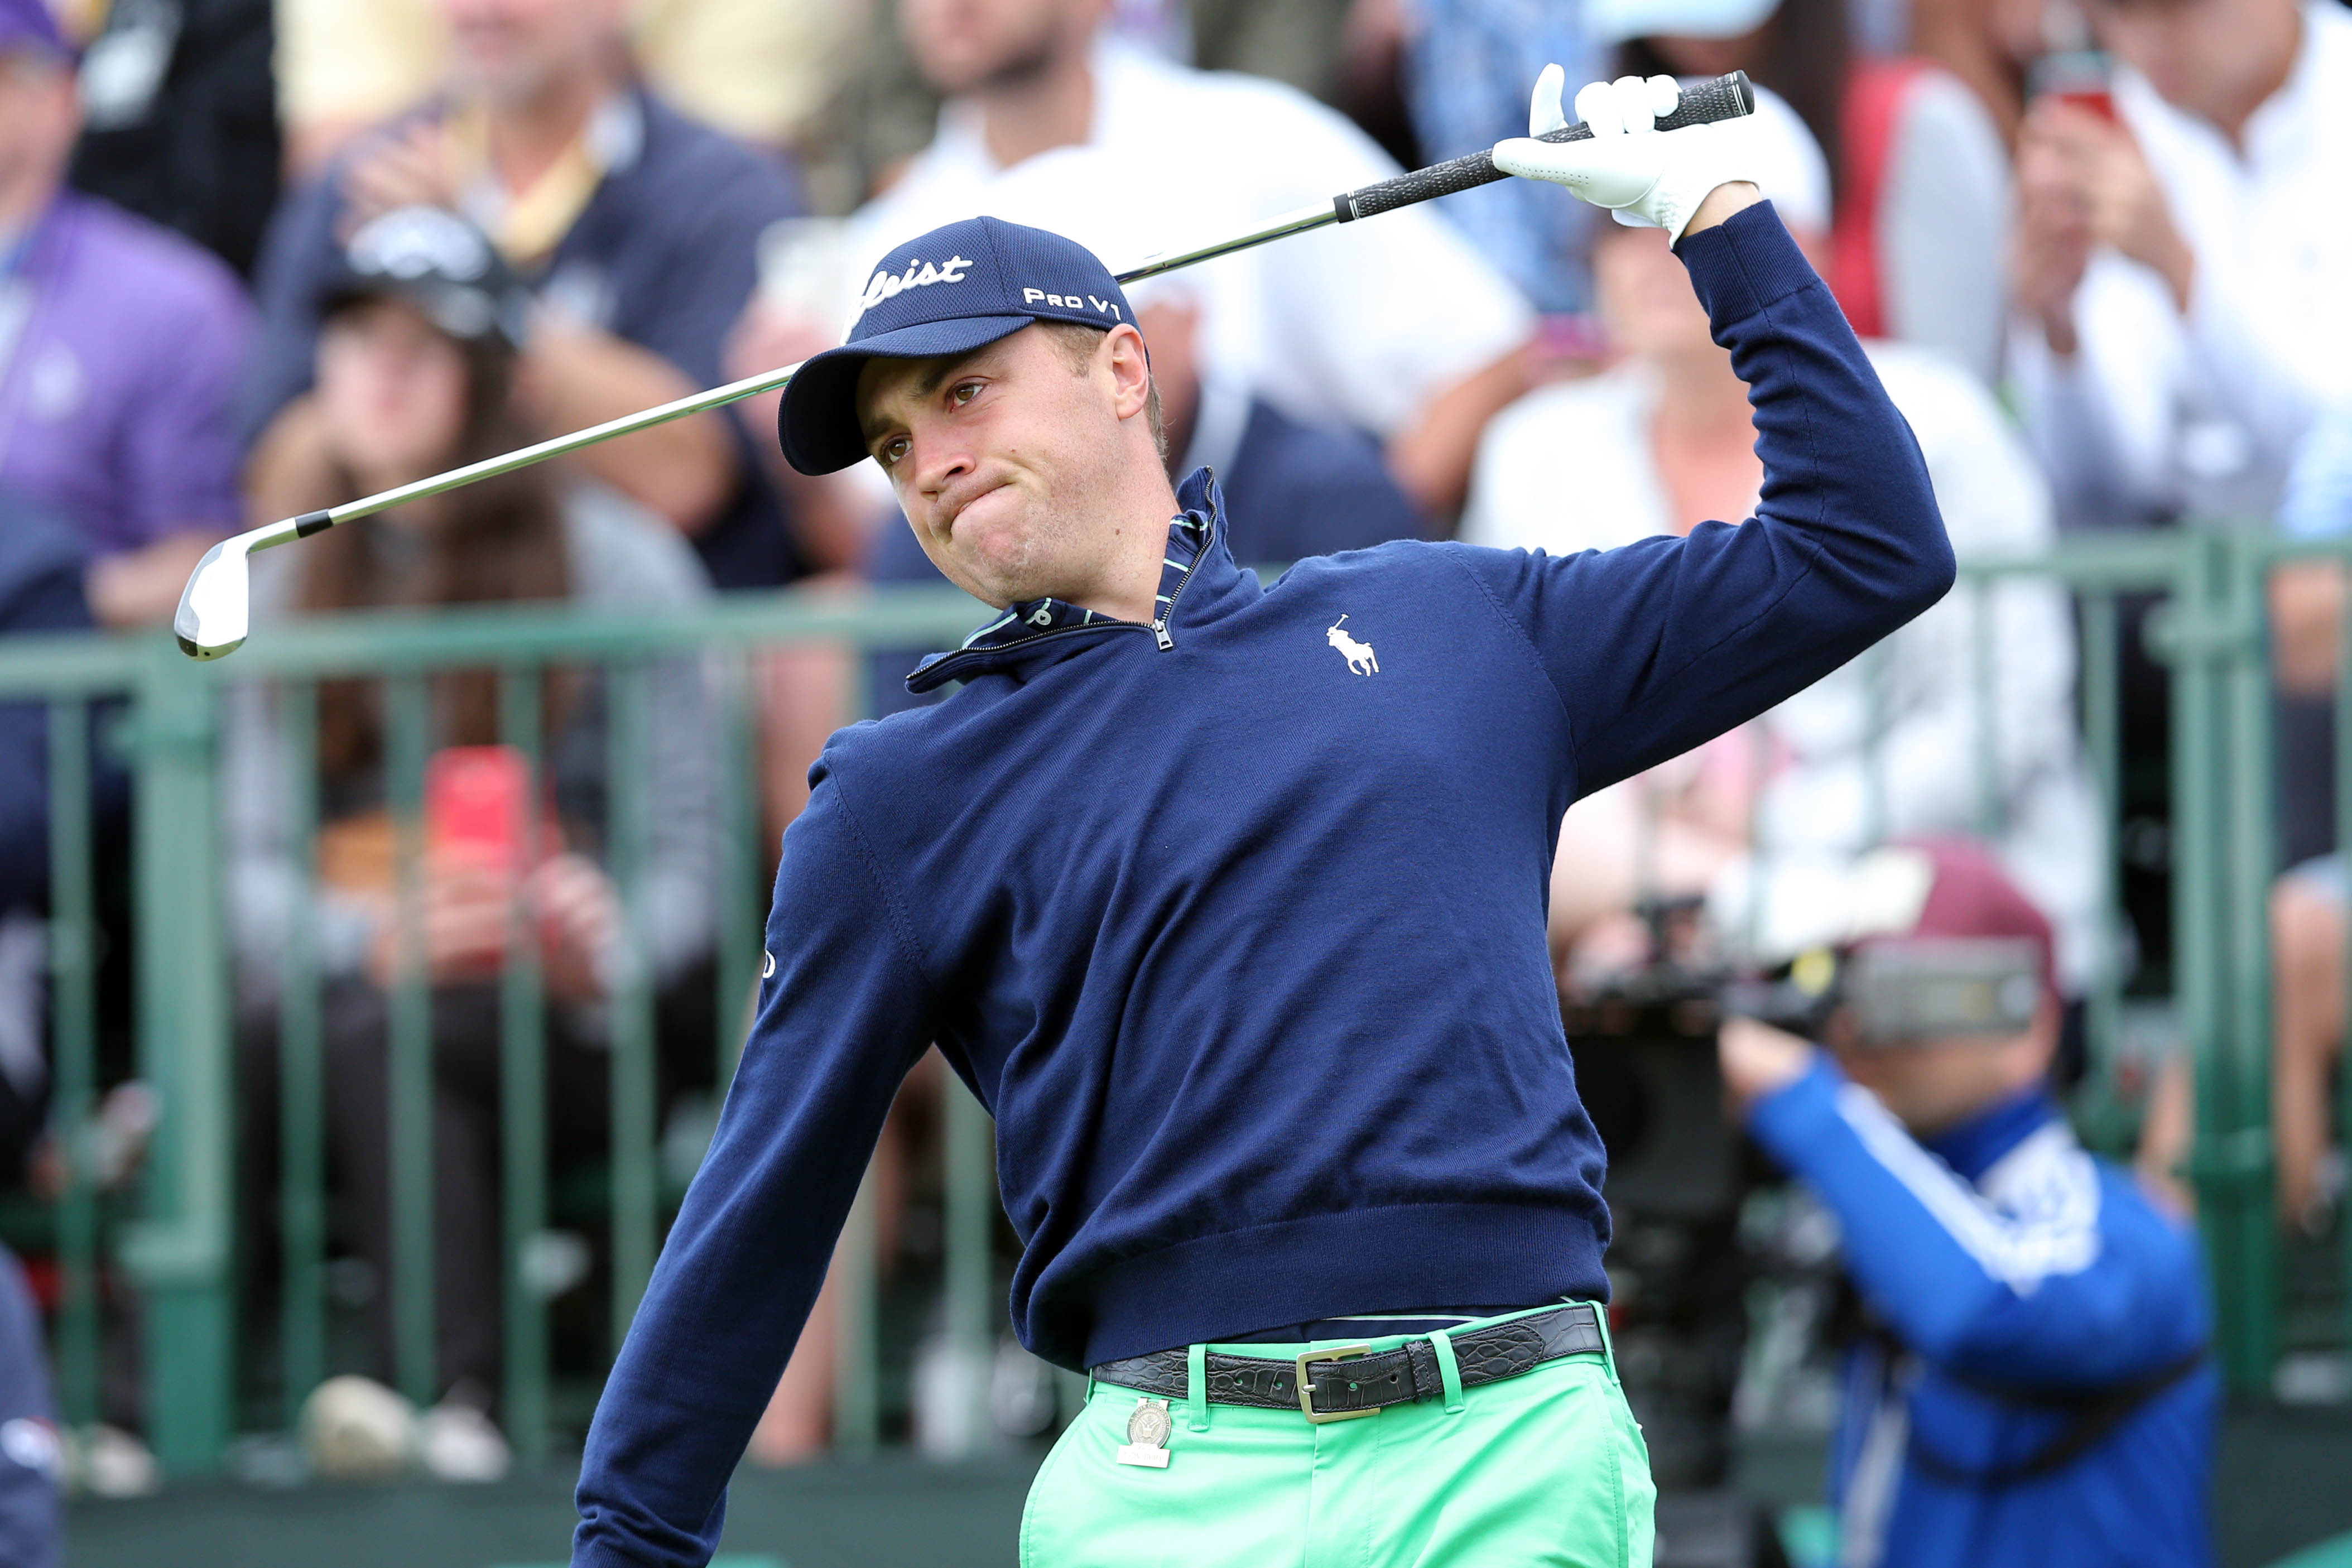 Jun 15, 2018; Southampton, NY, USA; Justin Thomas reacts after he tees off the tenth hole during the second round of the U.S. Open golf tournament at Shinnecock Hills GC - Shinnecock Hills Golf C. Mandatory Credit: Brad Penner-USA TODAY Sports